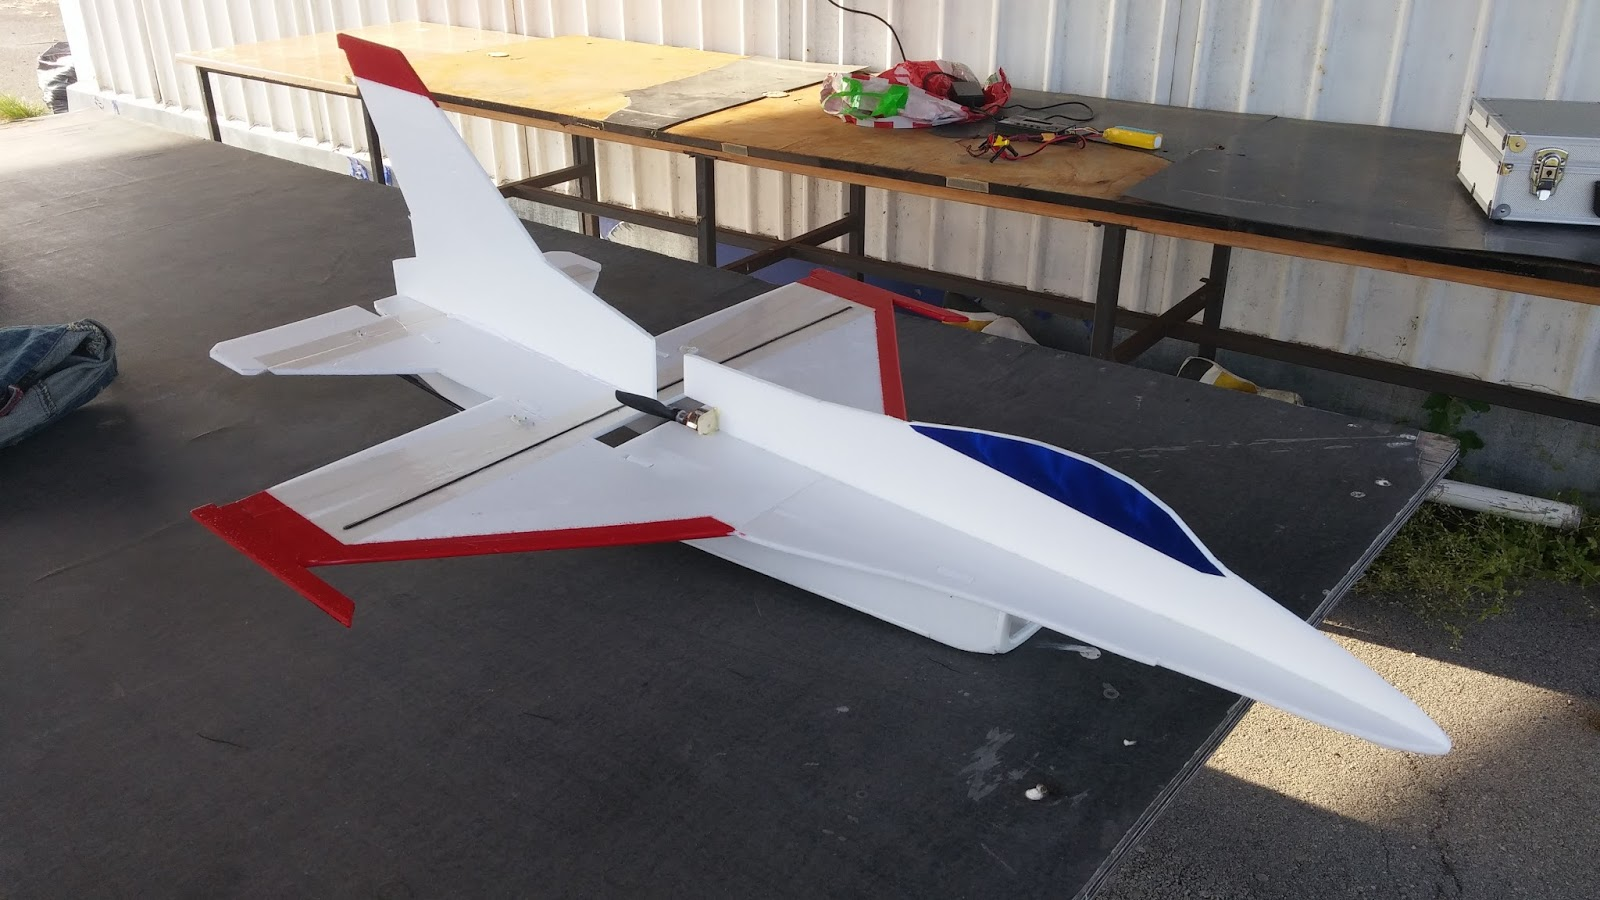 RC Hobby - Start a new adventure and Fly: Scratch build RC airplane